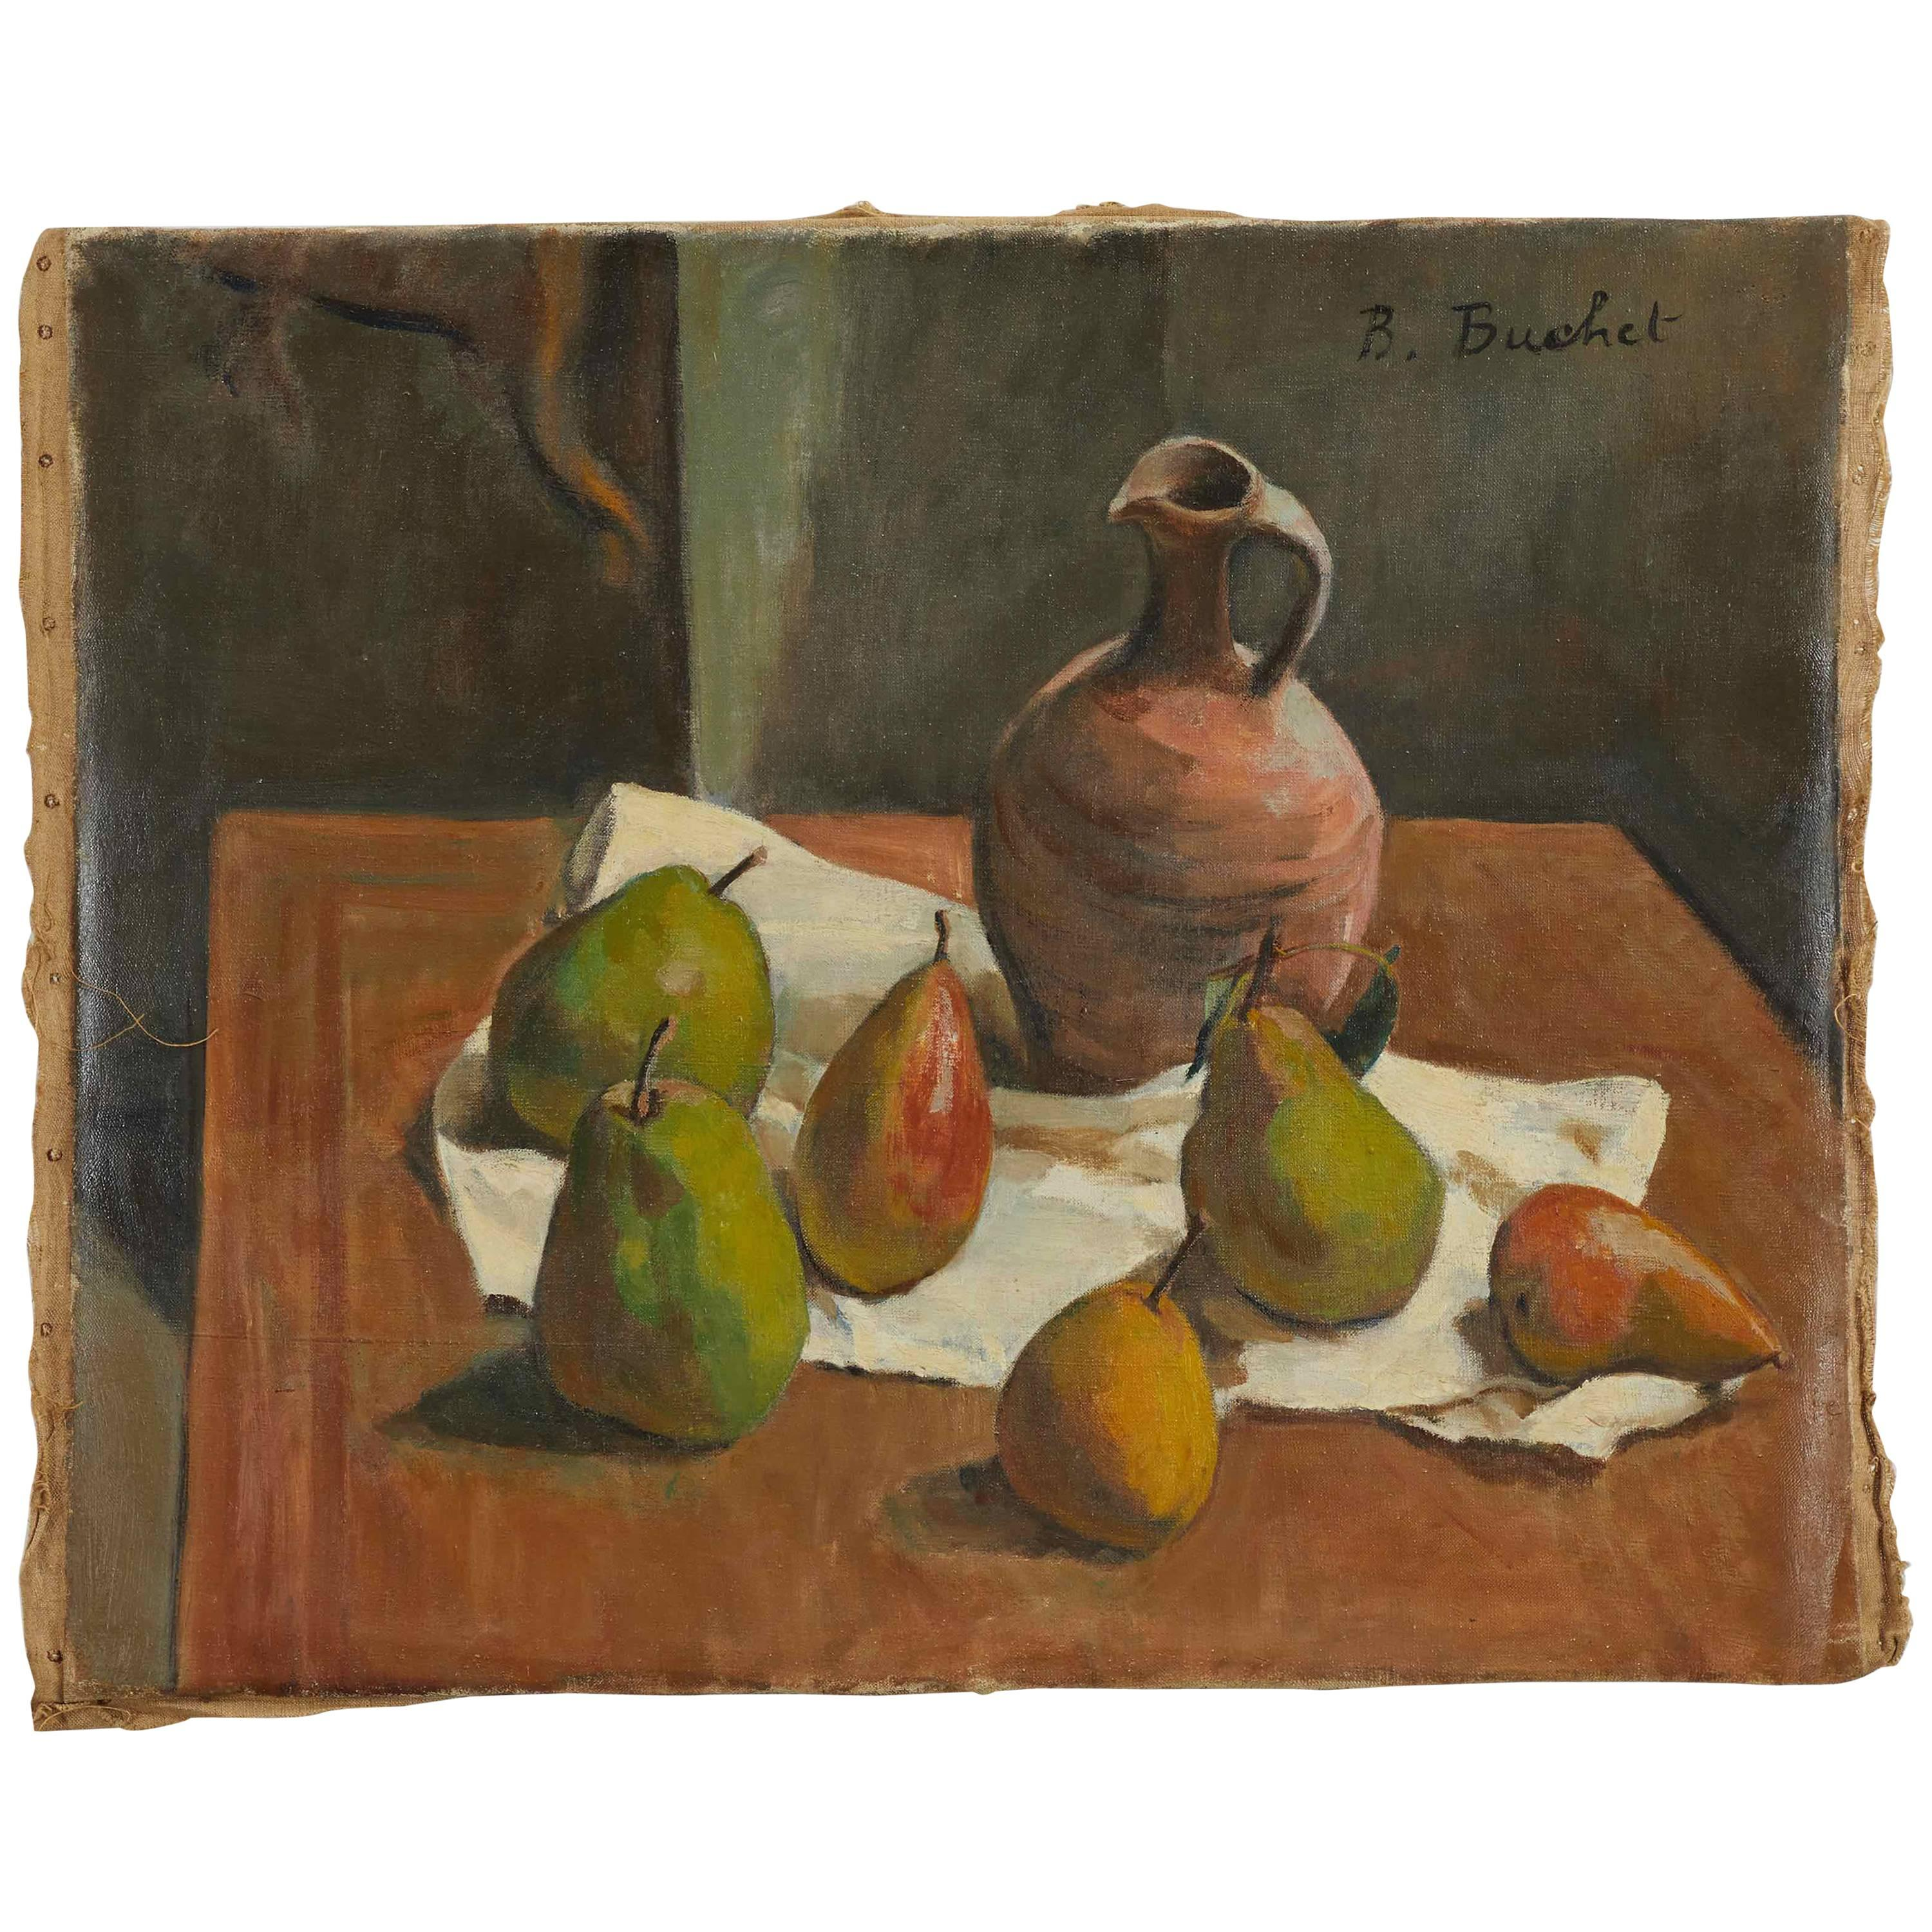 Early 20th Century Still Life Oil Painting on Canvas by artist B. Buchet